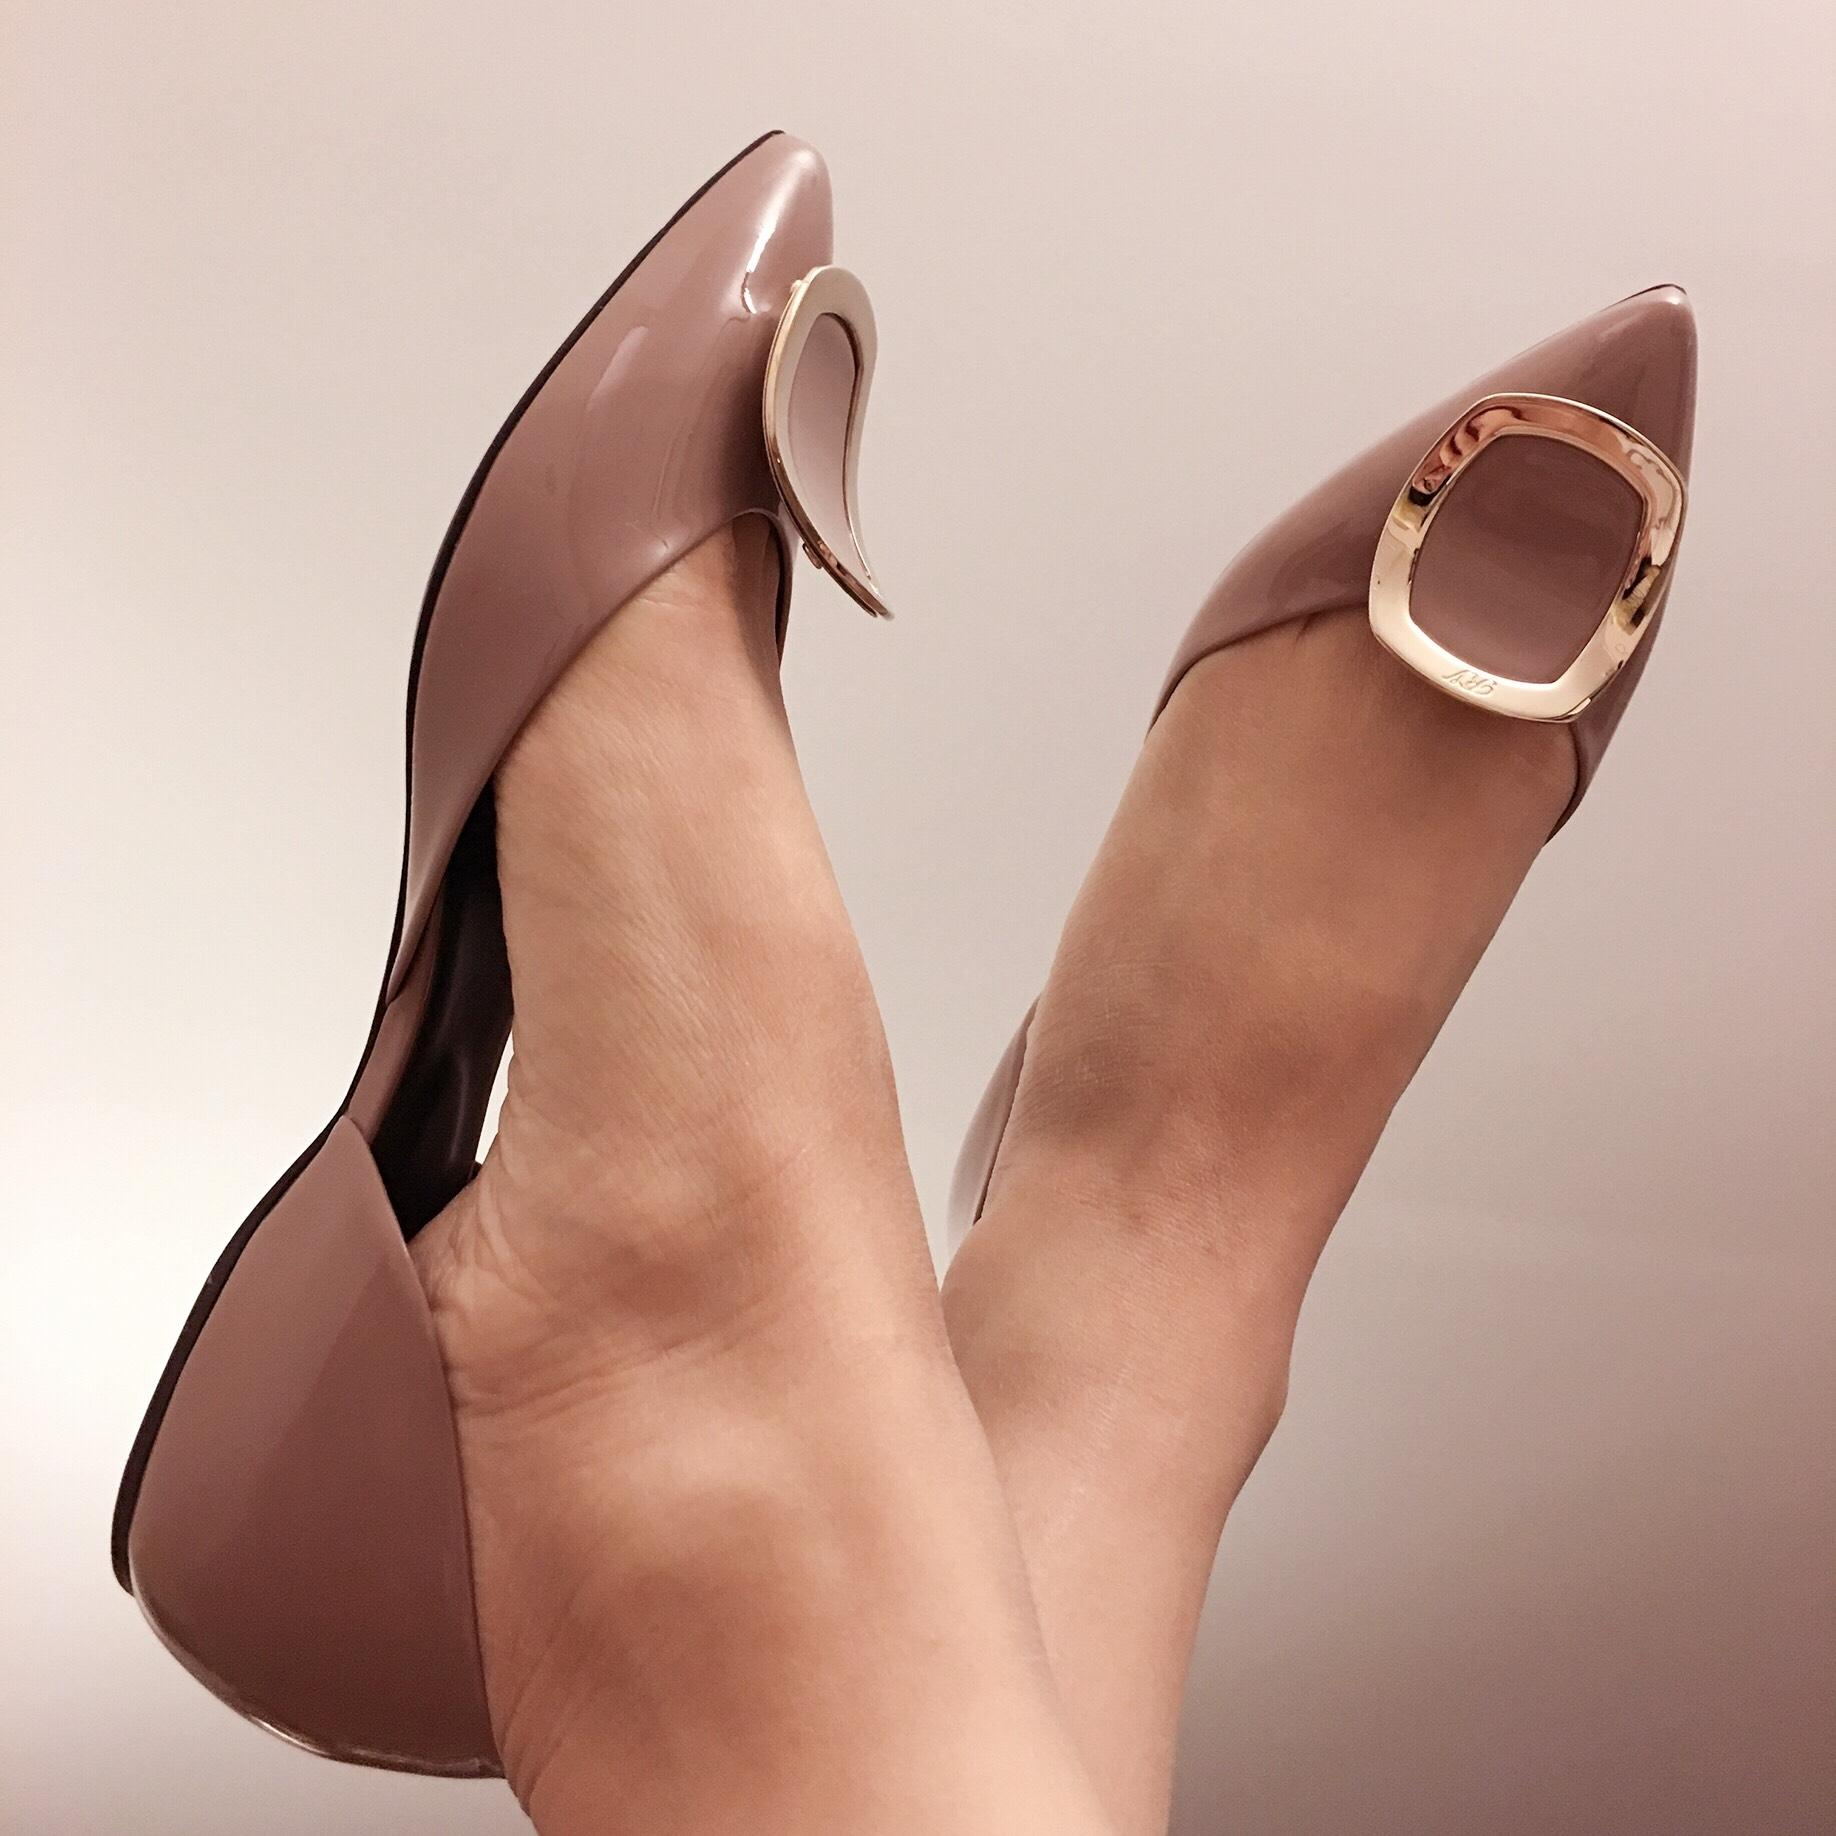 Roger Vivier Chips d'Orsay leather ballerinas KCYKzZVN